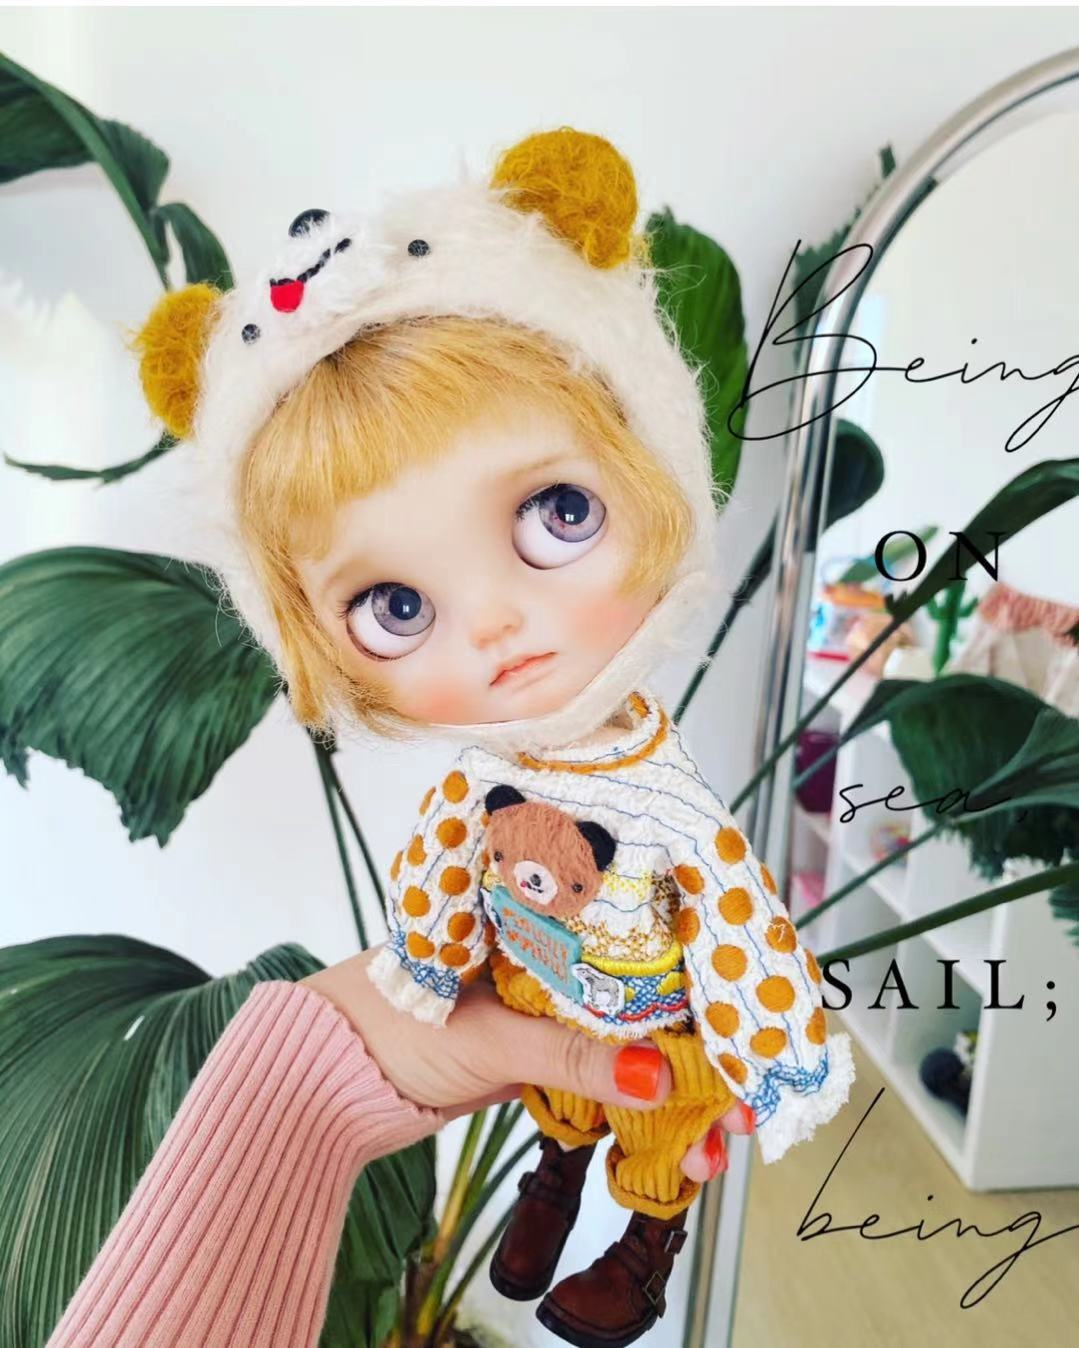 Bear Kids Set s yu sells s shunfeng to pay super cute little clothes s little dream girl products